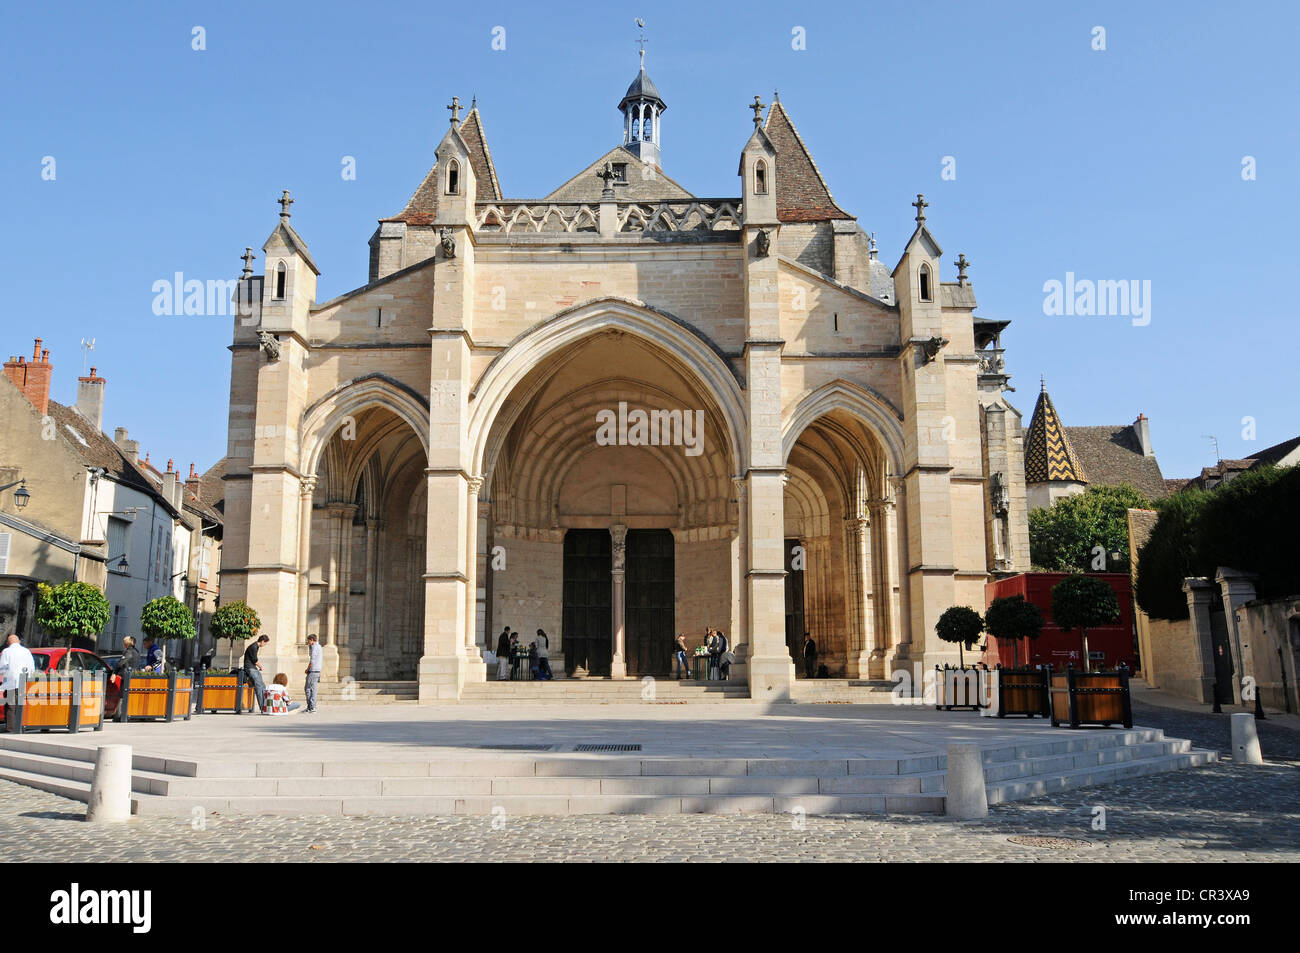 Collegiale Notre-Dame, collegiate church, Beaune, Department of Cote-d'Or, Burgundy, France, Europe, PublicGround - Stock Image